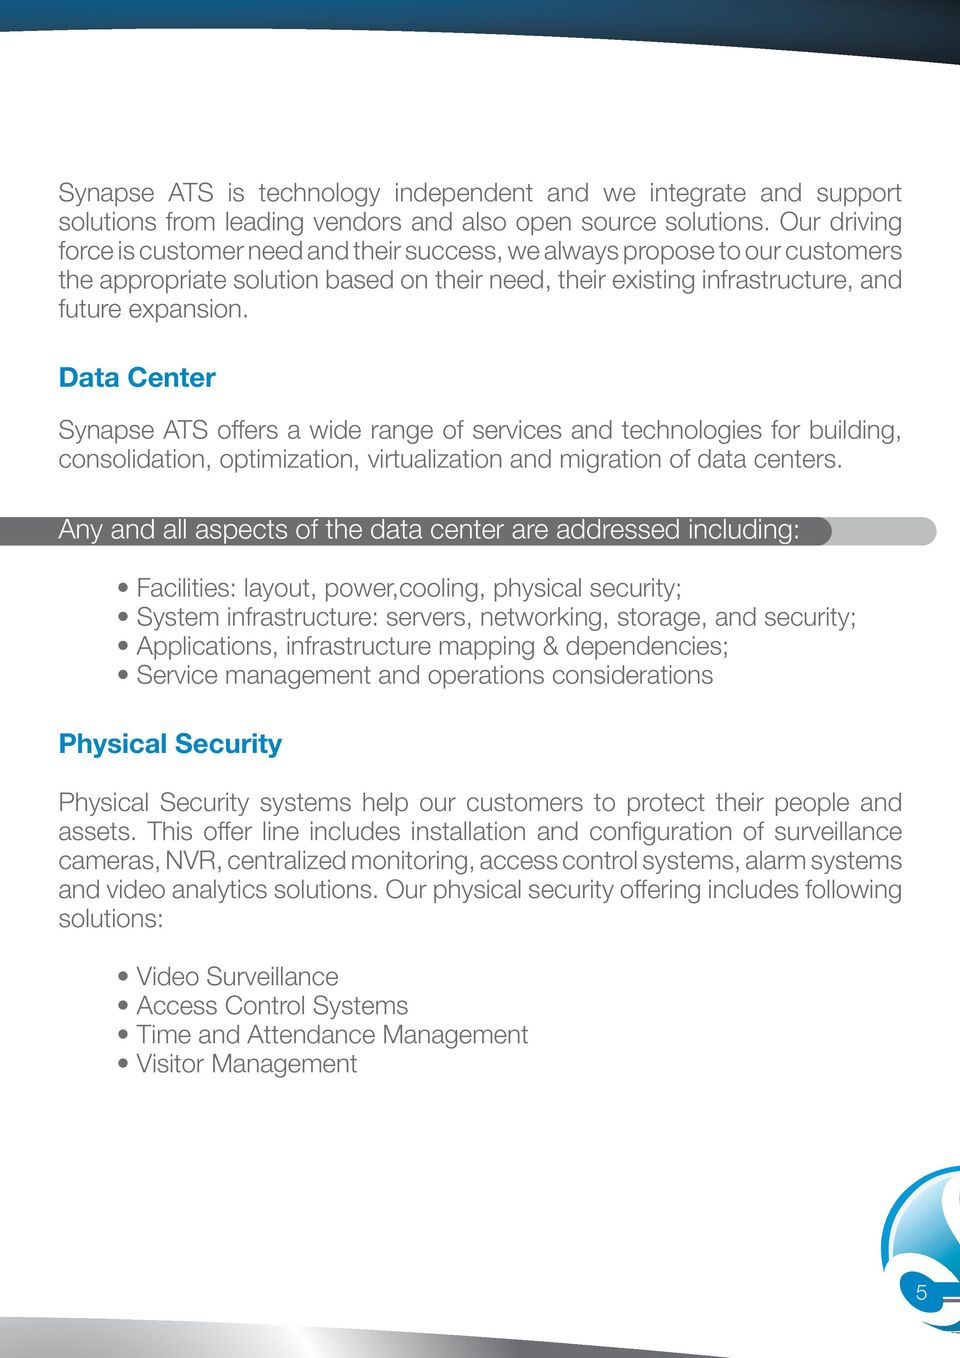 Data Center Synapse ATS offers a wide range of services and technologies for building, consolidation, optimization, virtualization and migration of data centers.